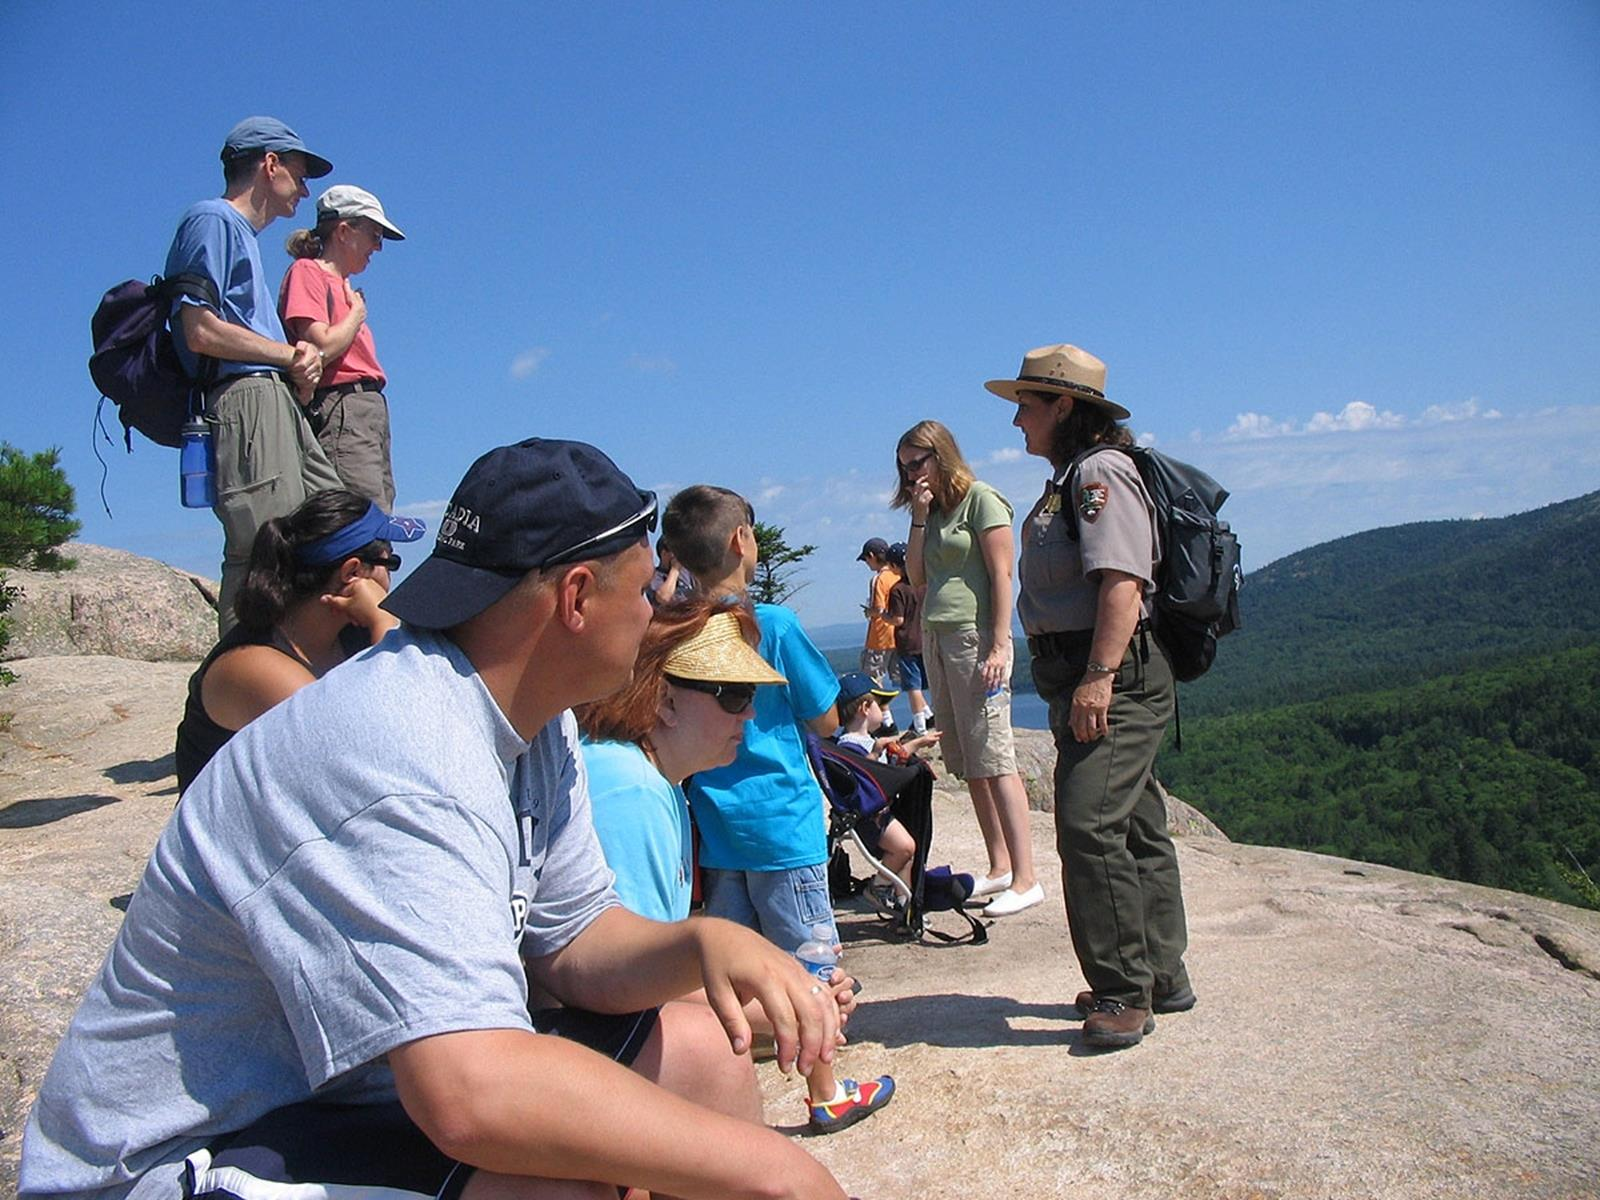 Ranger leading a Mountain Mysteries family program at Acadia National Park. Credit: National Park Service